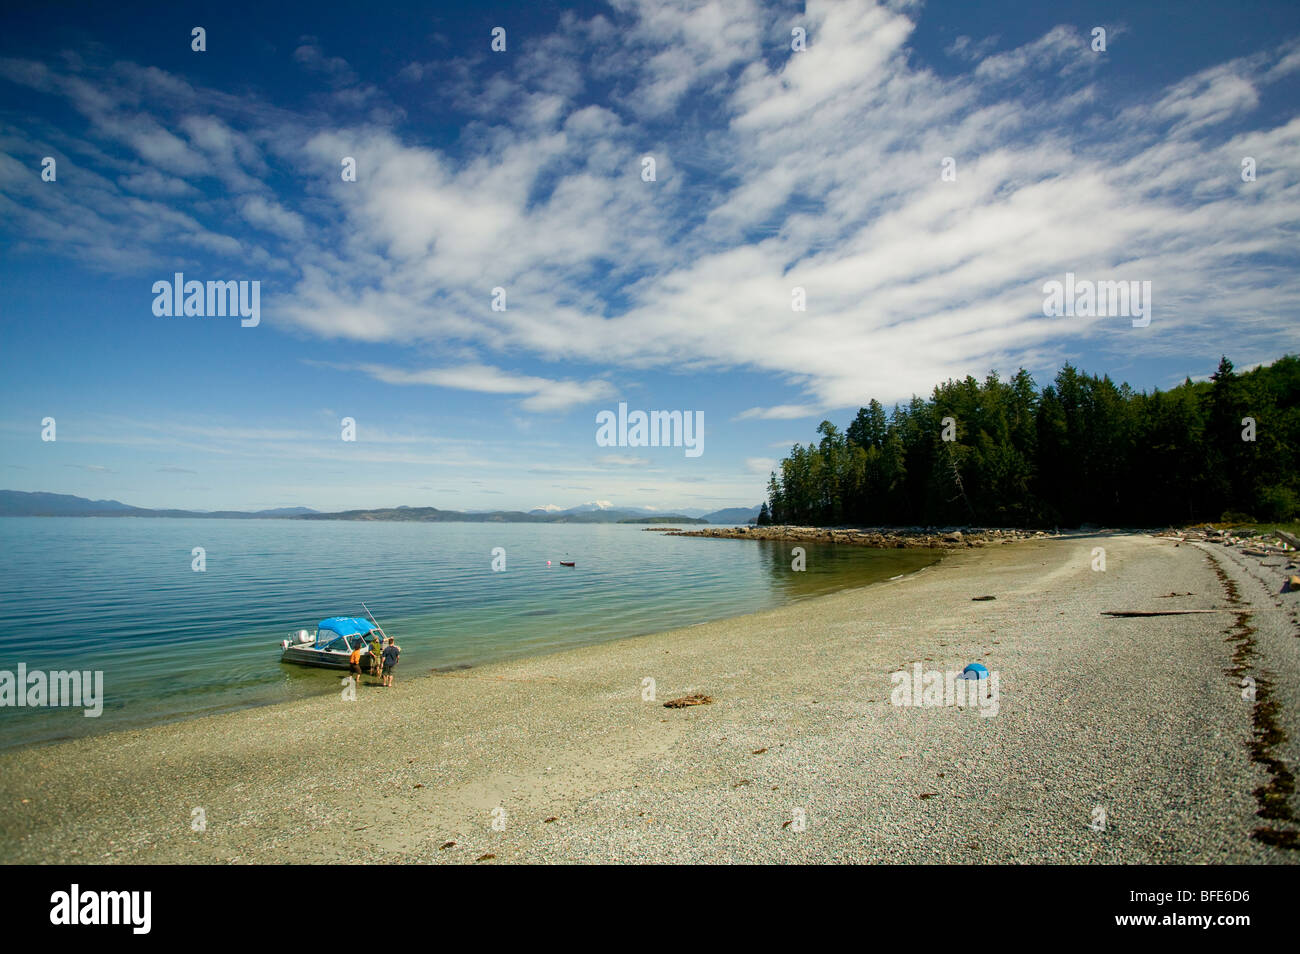 Marina Island, a few minutes away from Cortes Island by boat, Marina Island, Discovery Islands, British Columbia, - Stock Image